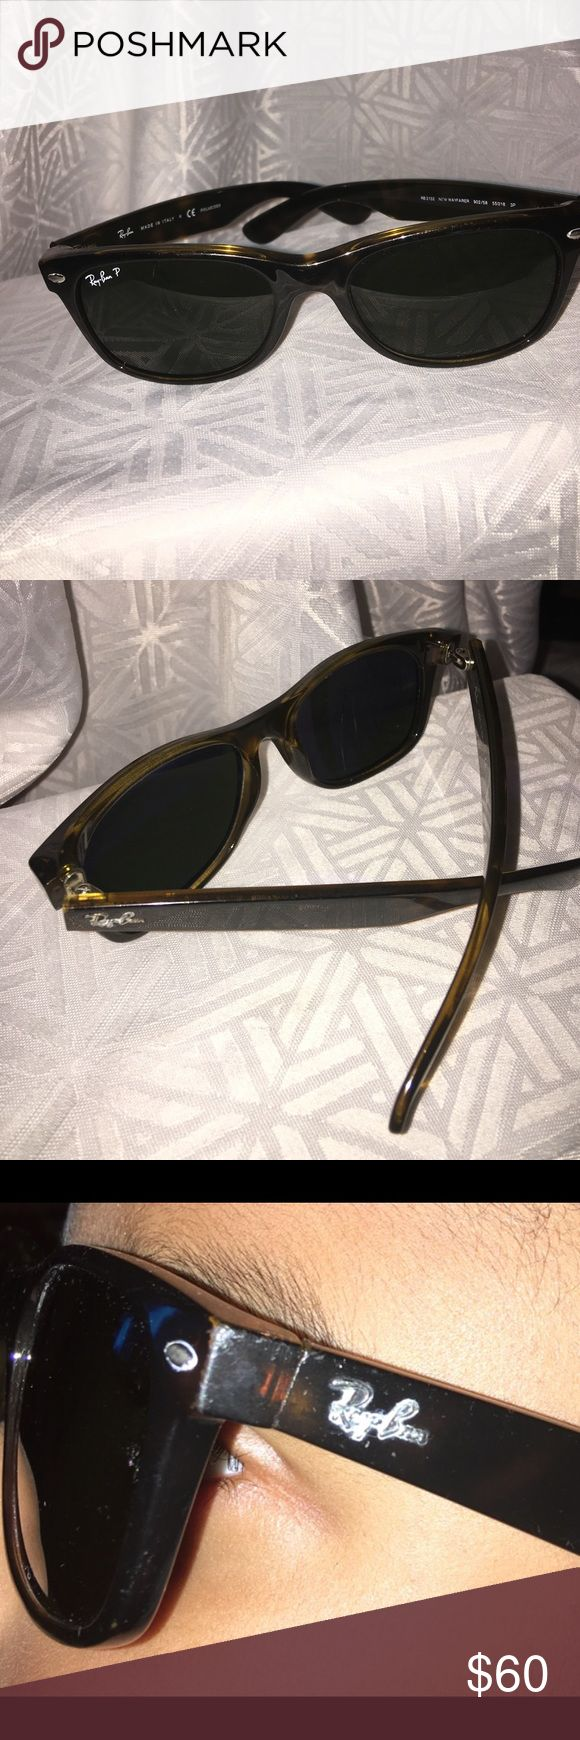 💯Authentic Ray Ban Sunglasses 😎 with the Case Authentic Ray Ban Sunglasses RB 2132 902/58 55[] 18 3P These are New WayFarer Made in Italy. FLAWS--- these Sunglasses have a crack on the right lenses which strangely is not visible while wearing these 🕶 sunglasses. Please see last photo. Ray Ban Accessories Sunglasses